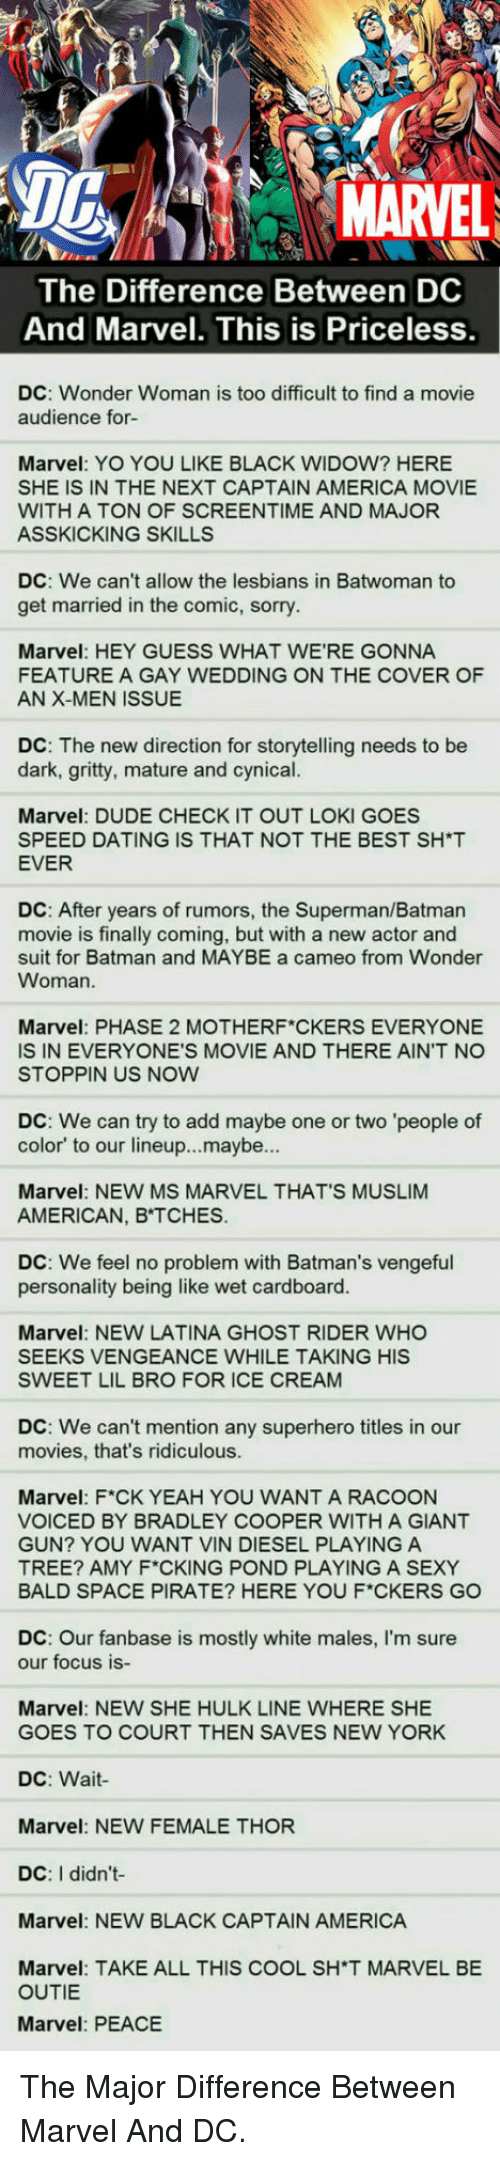 America, Batman, and Dating: DG  MARVEL  The Difference Between DC  And Marvel. This is Priceless  DC: Wonder Woman is too difficult to find a movie  audience for-  Marvel: YO YOU LIKE BLACK WIDOW? HERE  SHE IS IN THE NEXT CAPTAIN AMERICA MOVIE  WITH A TON OF SCREENTIME AND MAJOR  ASSKICKING SKILLS  DC: We can't allow the lesbians in Batwoman to  get married in the comic, sorry  Marvel: HEY GUESS WHAT WE'RE GONNA  FEATURE A GAY WEDDING ON THE COVER OF  AN X-MEN ISSUE  DC: The new direction for storytelling needs to be  dark, gritty, mature and cynical.  ES  Marvel: DUDE CHECK IT OUT LOKI GO  SPEED DATING IS THAT NOT THE BEST SH*T  EVER  DC: After years of rumors, the Superman/Batman  movie is finally coming, but with a new actor and  suit for Batman and MAYBE a cameo from Wonder  Woman.  Marvel: PHASE 2 MOTHERF CKERS EVERYONE  IS IN EVERYONE'S MOVIE AND THERE AIN'T NO  STOPPIN US NOW  DC: We can try to add maybe one or two 'people of  color' to our lineup...maybe...  Marvel: NEW MS MARVEL THAT'S MUSLIM  AMERICAN, B TCHES.  DC: We feel no problem with Batman's vengeful  personality being like wet cardboard.  Marvel: NEW LATINA GHOST RIDER WHO  SEEKS VENGEANCE WHILE TAKING HIS  SWEET LIL BRO FOR ICE CREAM  DC: We can't mention any superhero titles in our  movies, that's ridiculous  Marvel: F*CK YEAH YOU WANT A RACOON  VOICED BY BRADLEY COOPER WITH A GIANT  GUN? YOU WANT VIN DIESEL PLAYING A  TREE? AMY F CKING POND PLAYING A SEXY  BALD SPACE PIRATE? HERE YOU F*CKERS GO  DC: Our fanbase is mostly white males, I'm sure  our focus is-  Marvel: NEW SHE HULK LINE WHERE SHE  GOES TO COURT THEN SAVES NEW YORK  DC: Wait  Marvel: NEW FEMALE THOR  DC: I didn't  Marvel: NEW BLACK CAPTAIN AMERICA  Marvel: TAKE ALL THIS COOL SH'T MARVEL BE  OUTIE  Marvel: PEACE <p>The Major Difference Between Marvel And DC.</p>